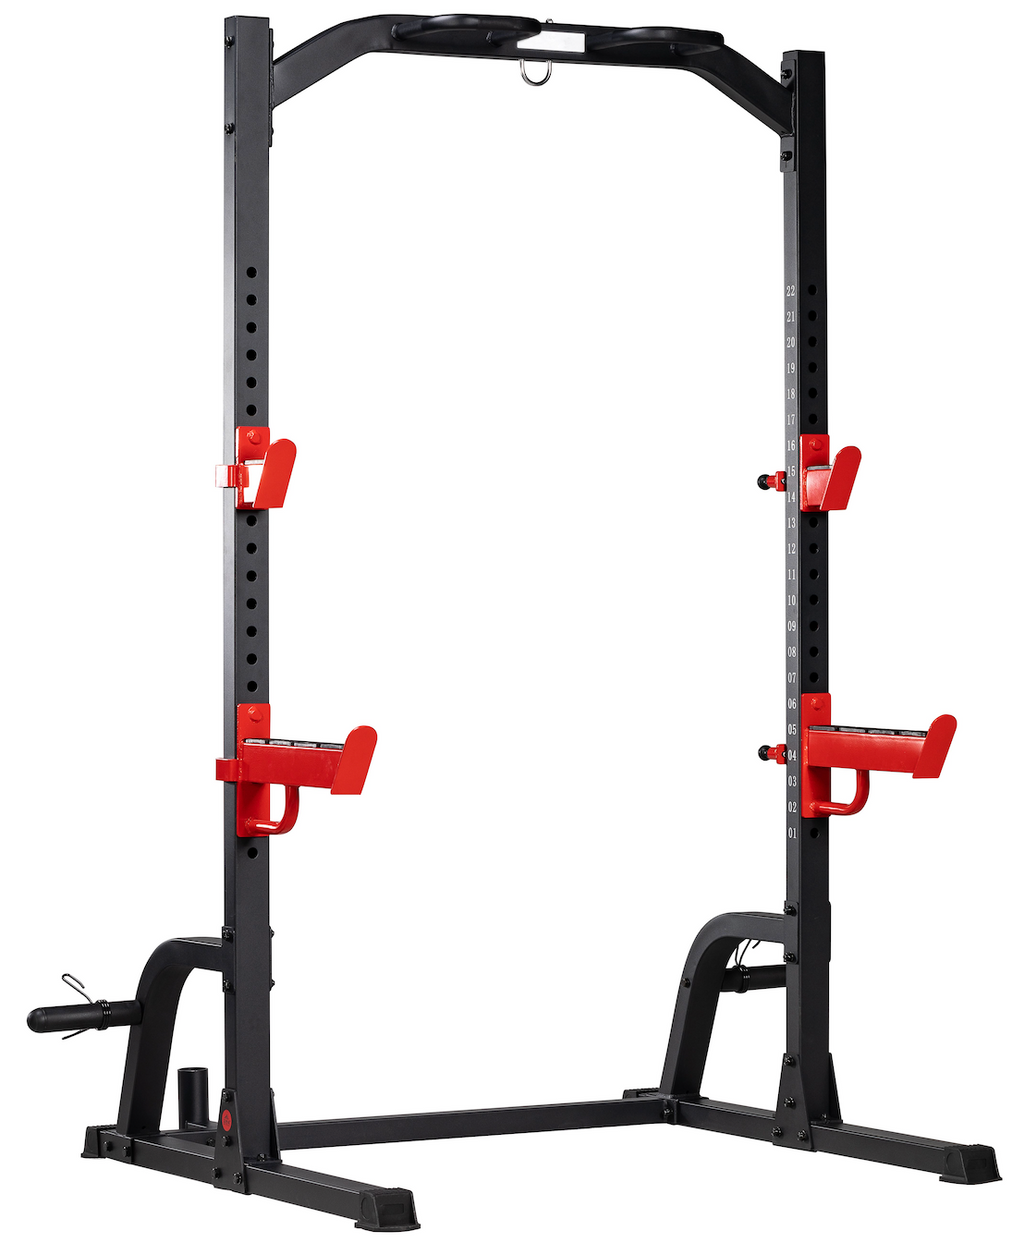 CROSS X HALF RACK